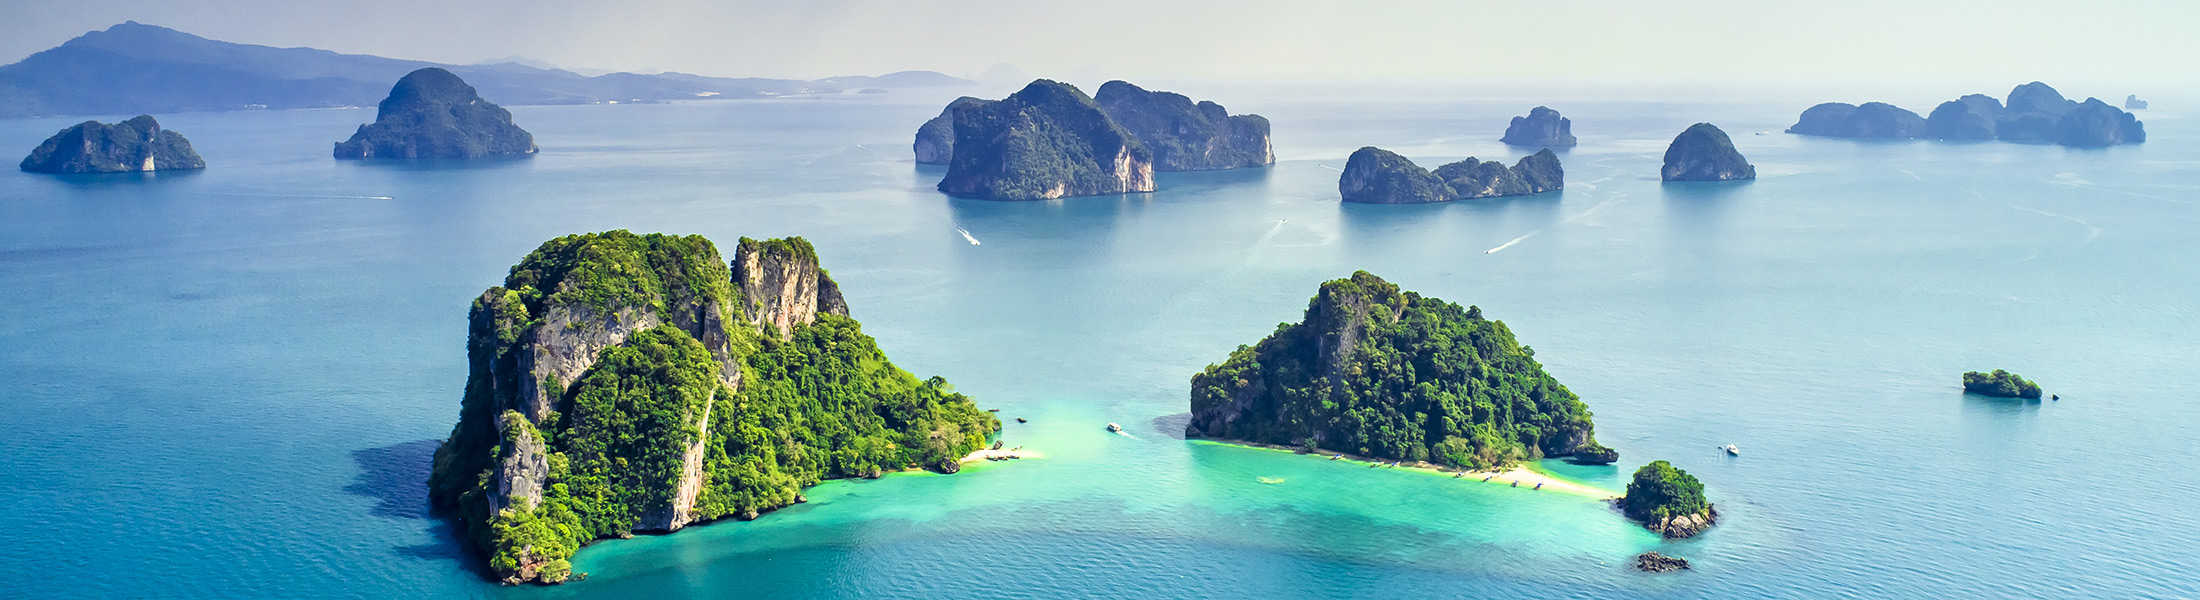 Aerial view of islands in the Andaman Sea on a Thailand Multi-Centre